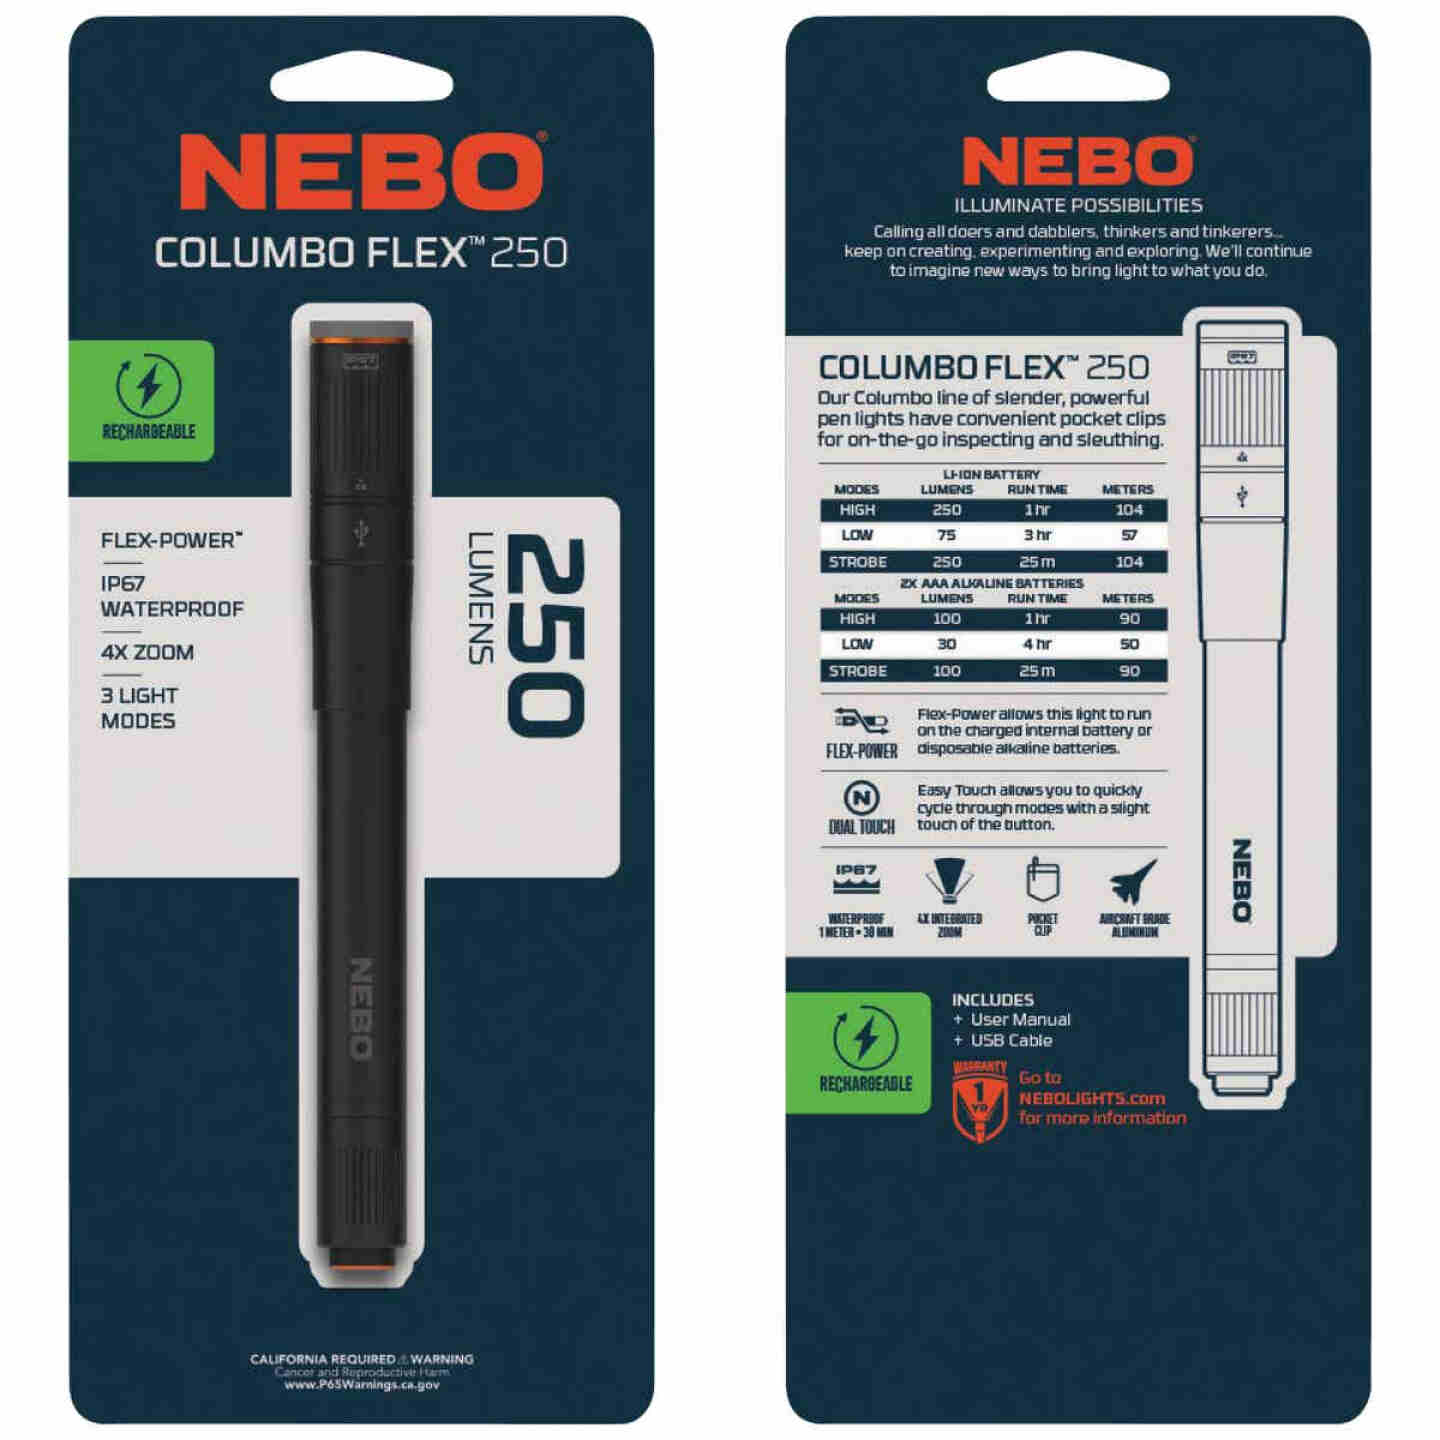 Nebo Columbo Flex LED Anodized Aluminum LED Rechargeable Penlight Image 2